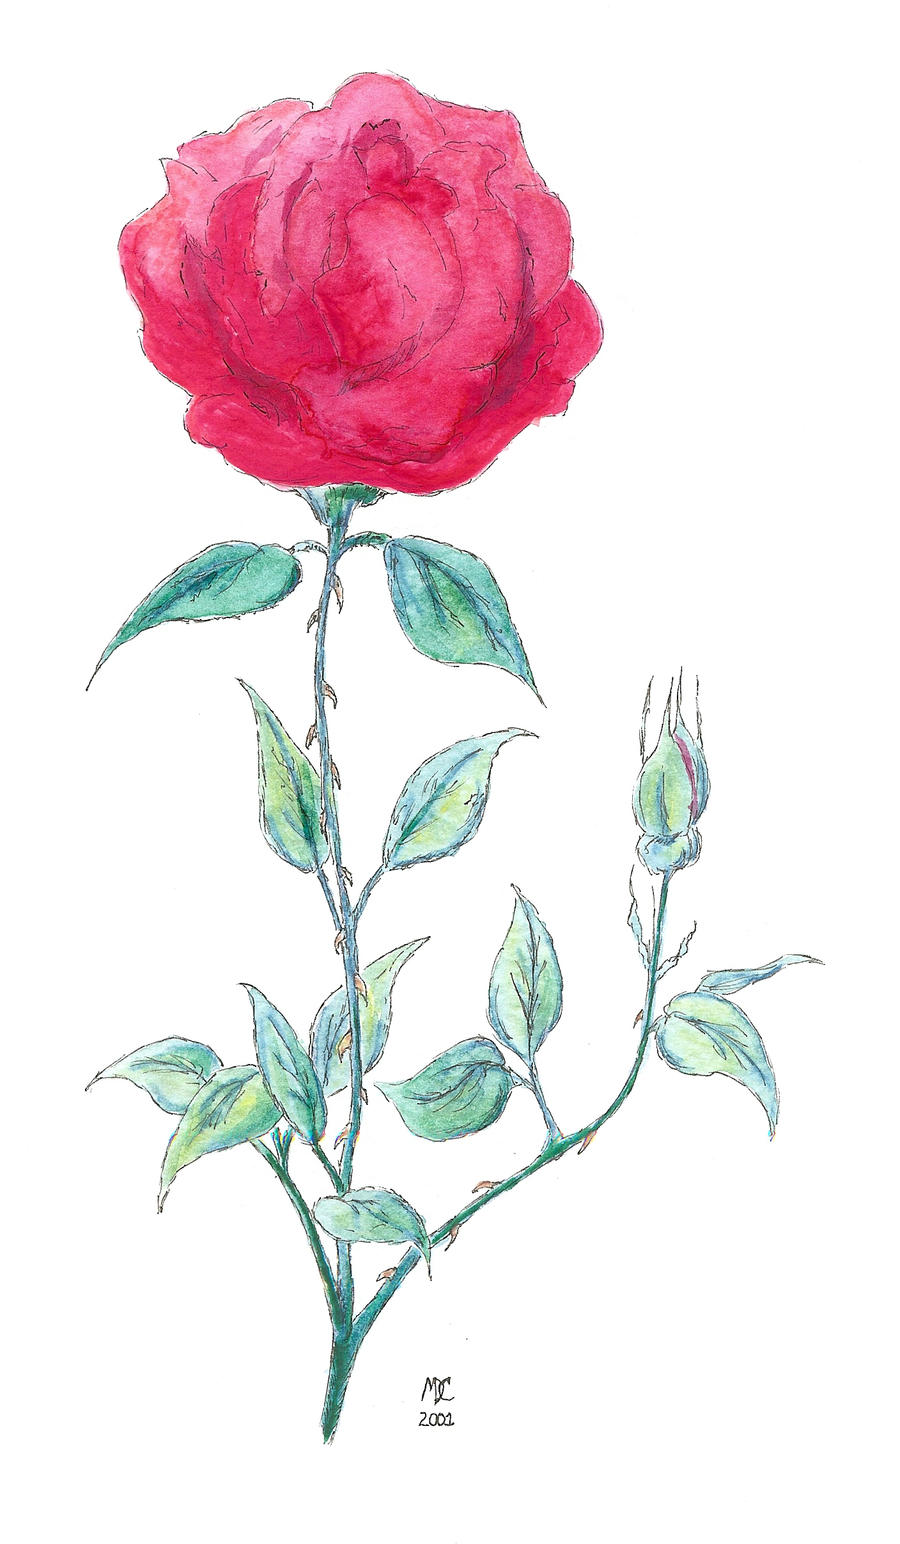 watercolor rose by MDC-PRODUCTIONS